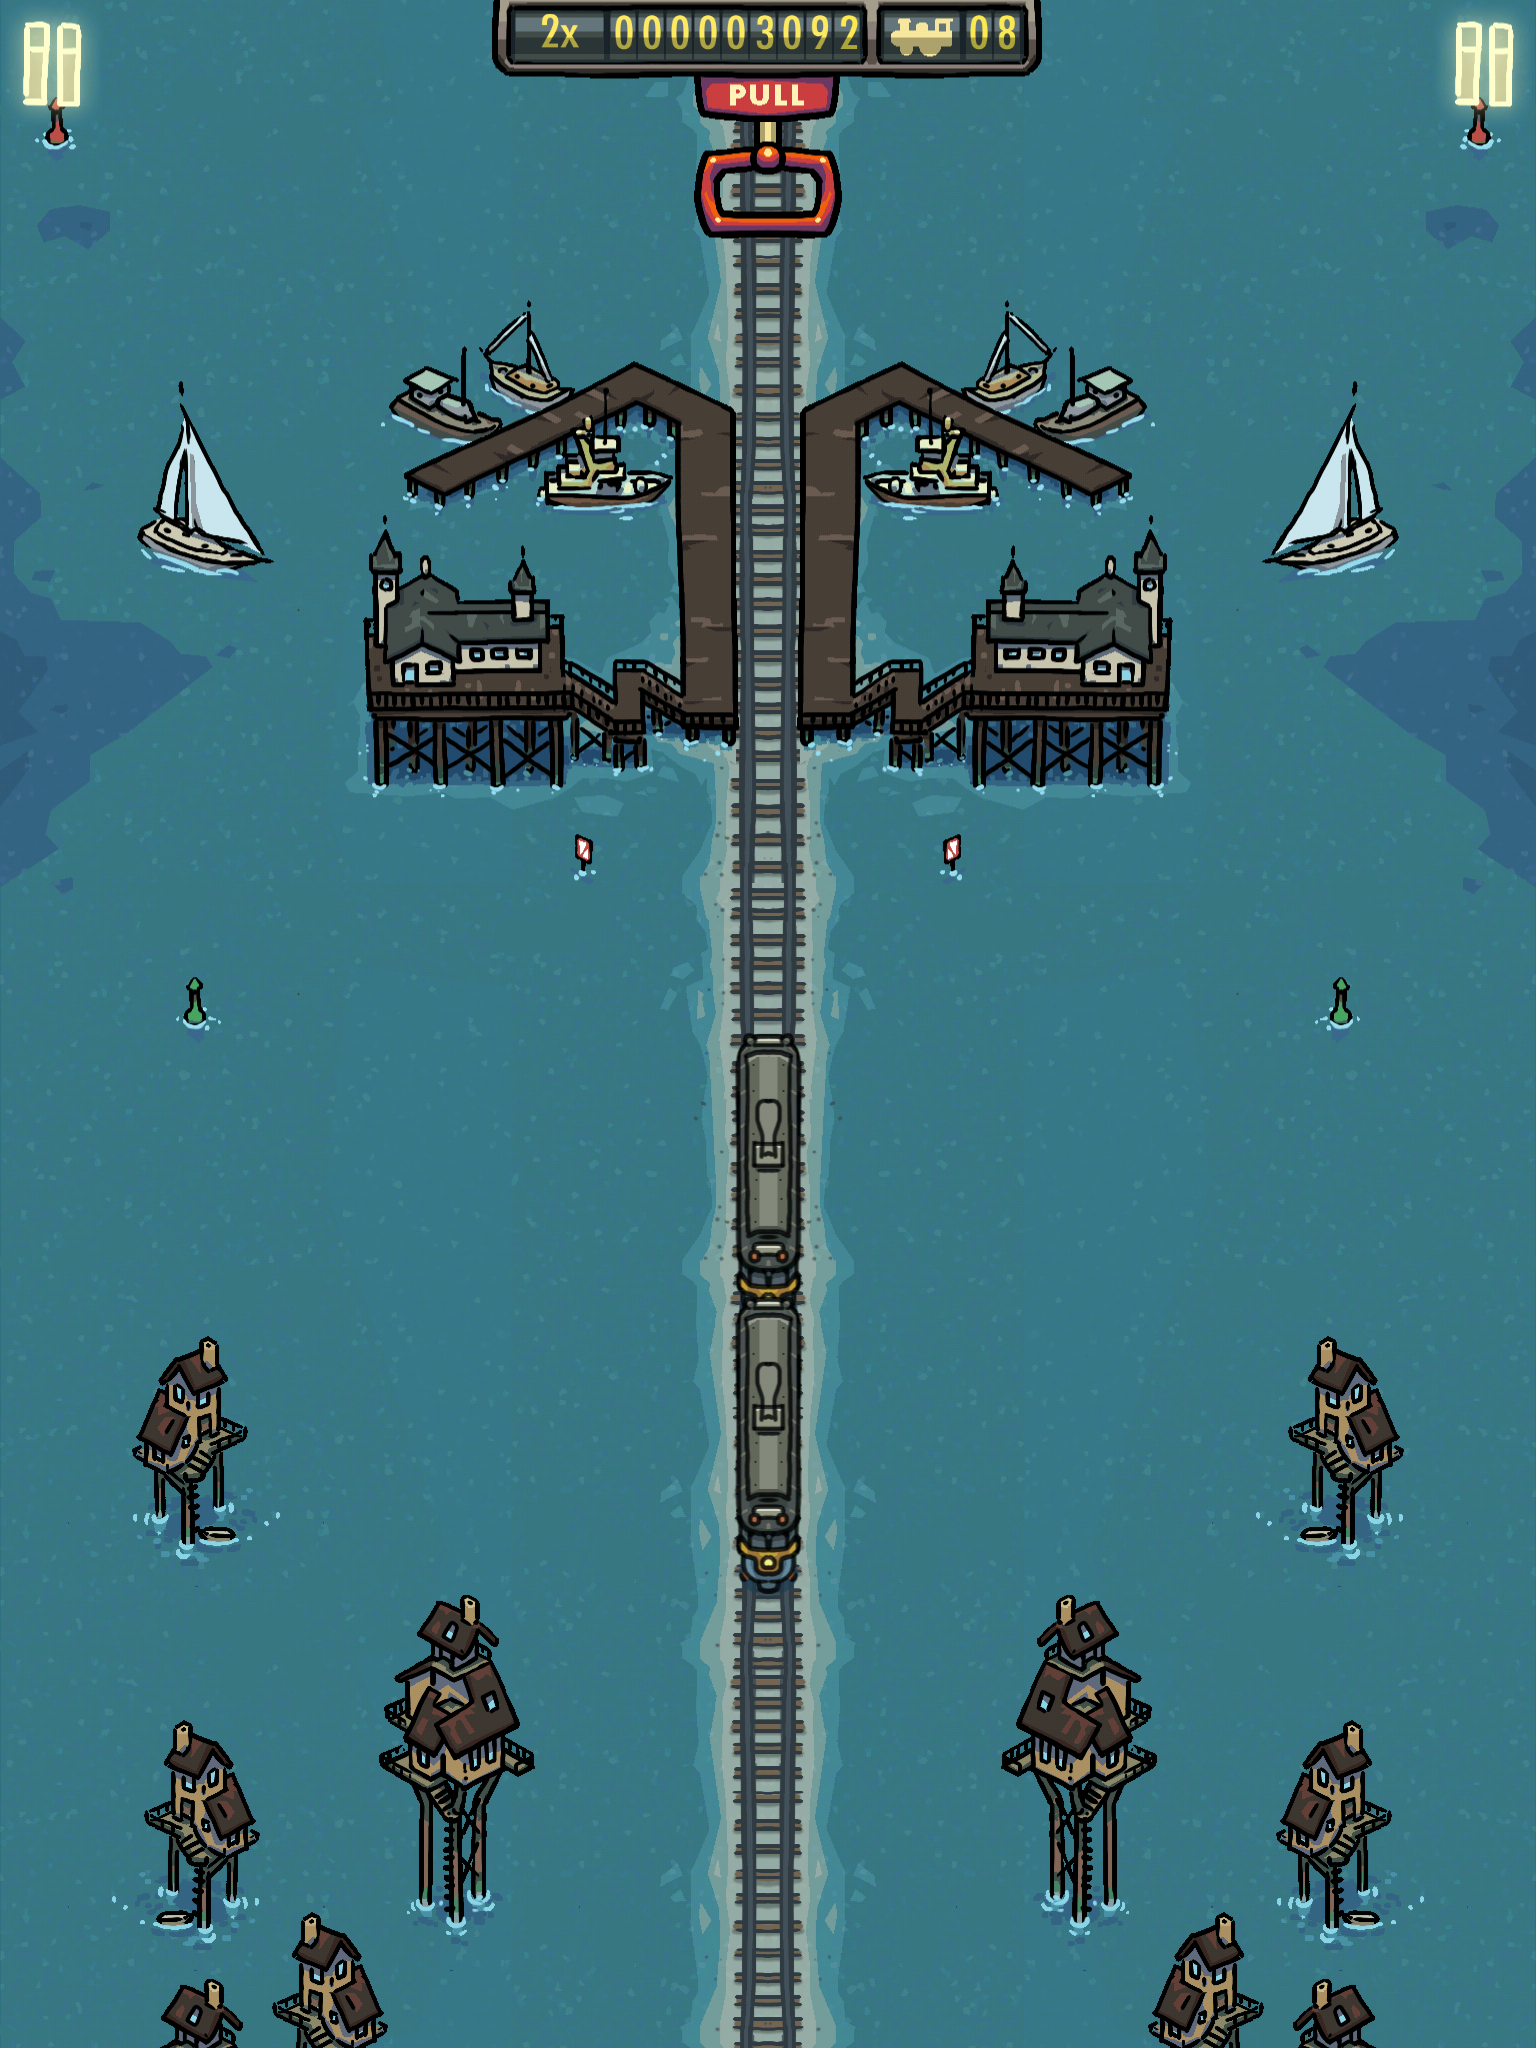 Symmetrain - Small Stilted Station